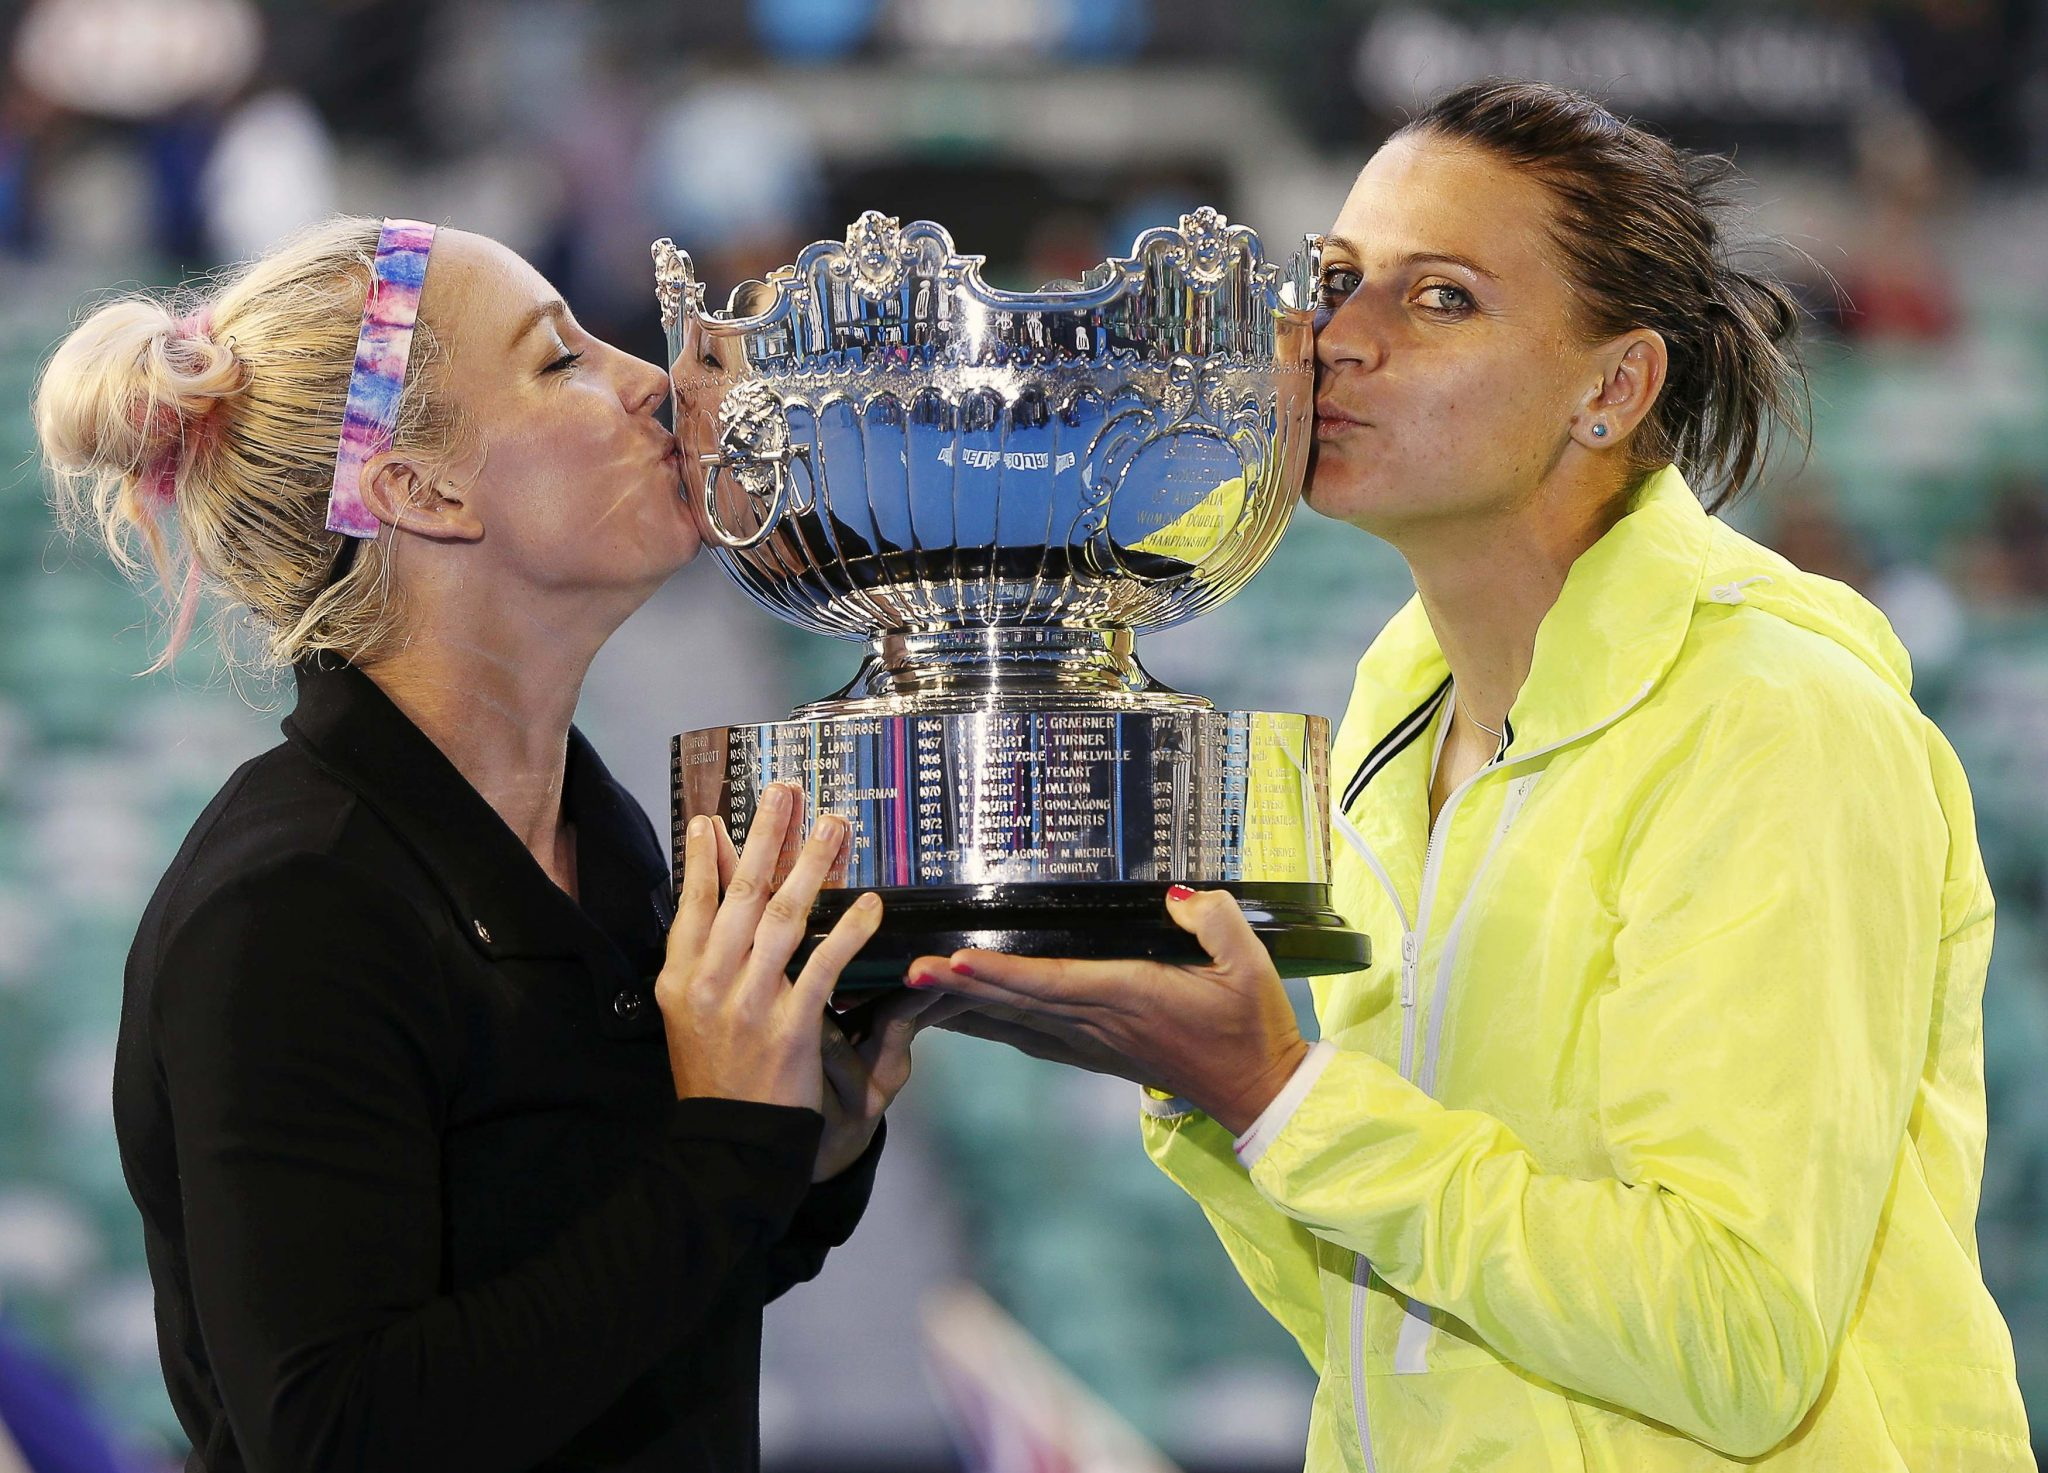 Mattek-Sands of the U.S. and Safarova of Czech Republic kiss their trophy after winning their women's doubles final match against Zheng of China and Chan of Taiwan at the Australian Open tennis tournament in Melbourne